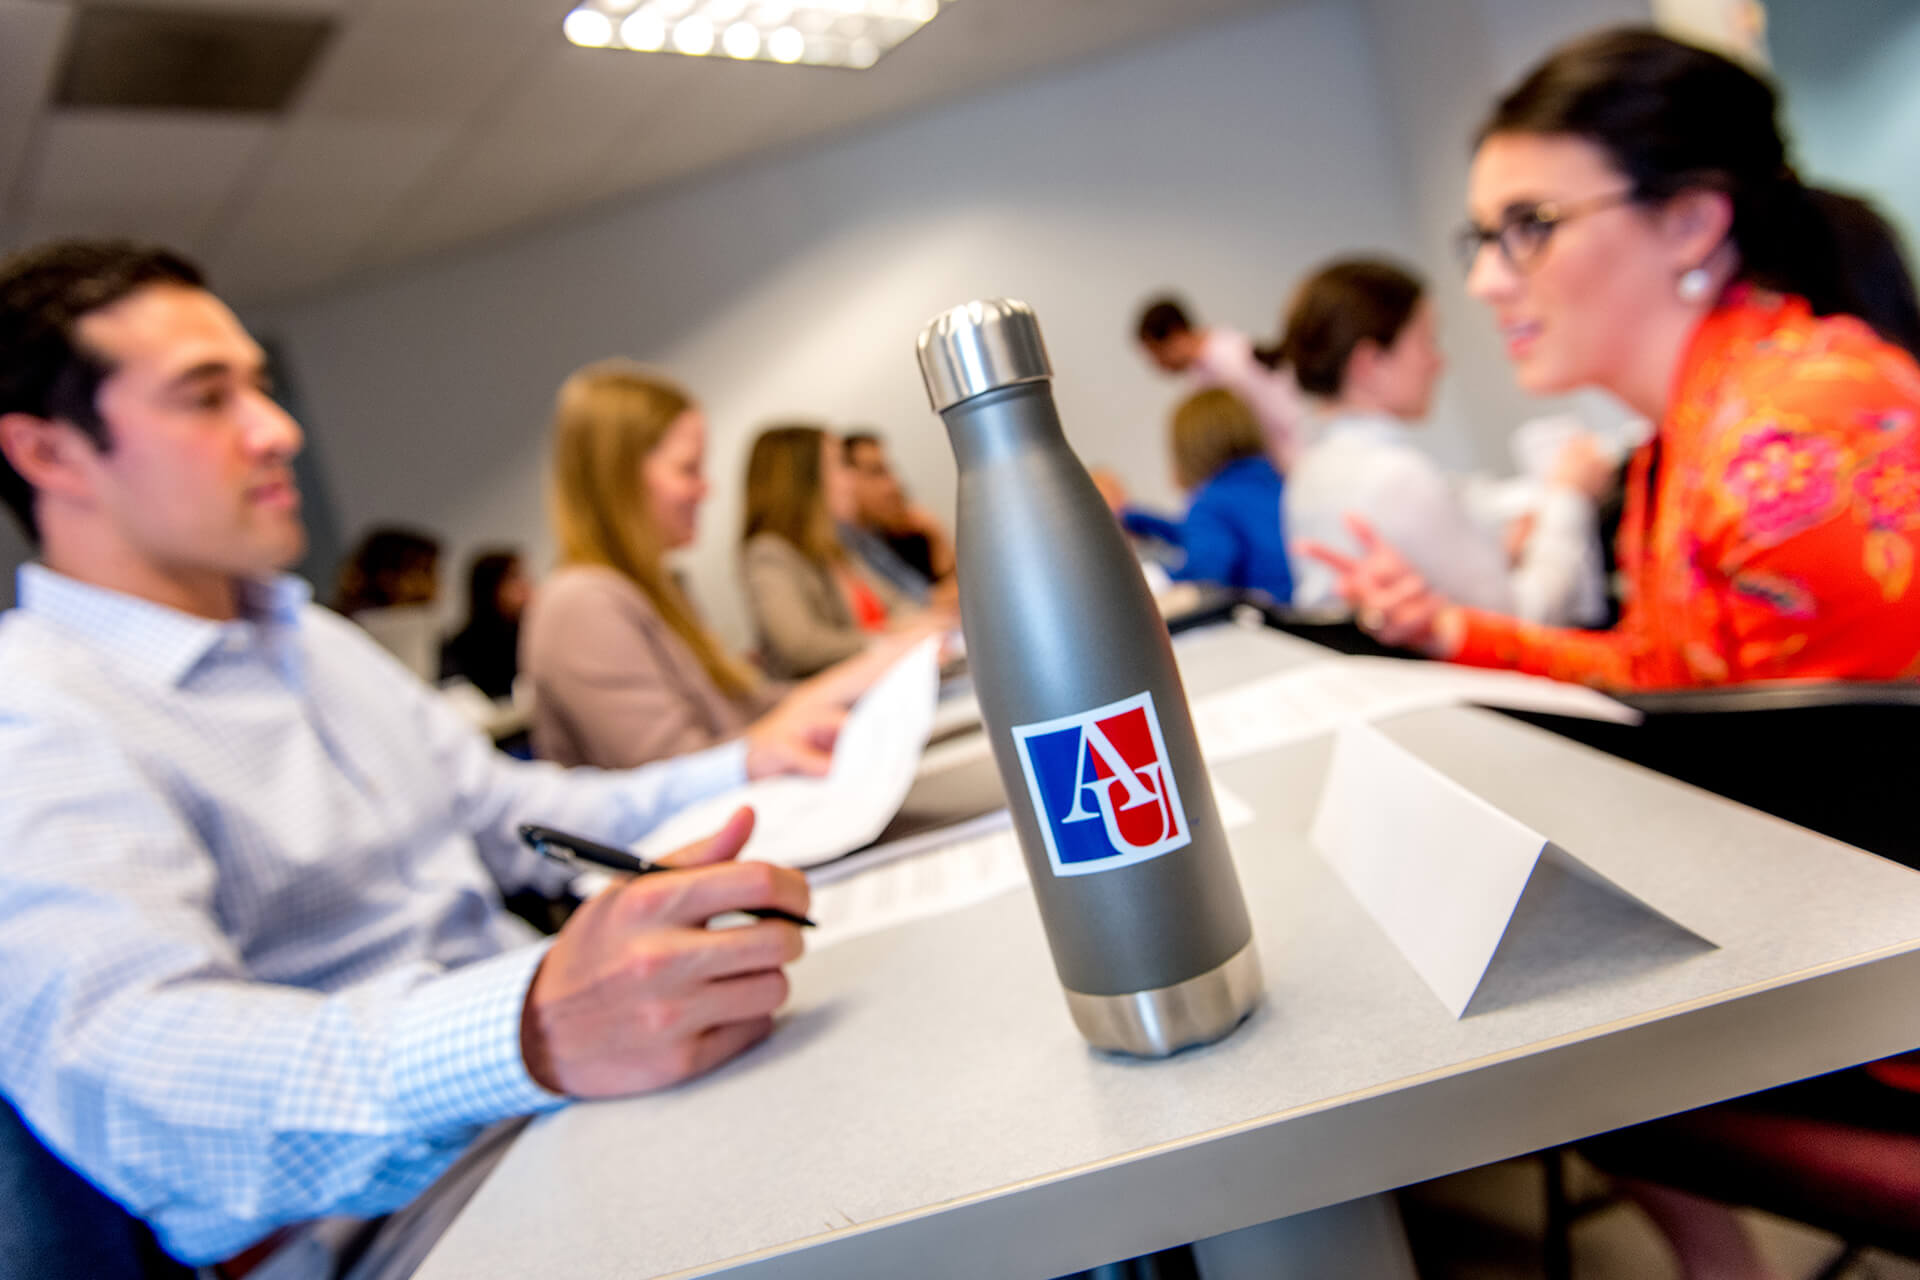 Graduate students discuss AU's academic opportunities.